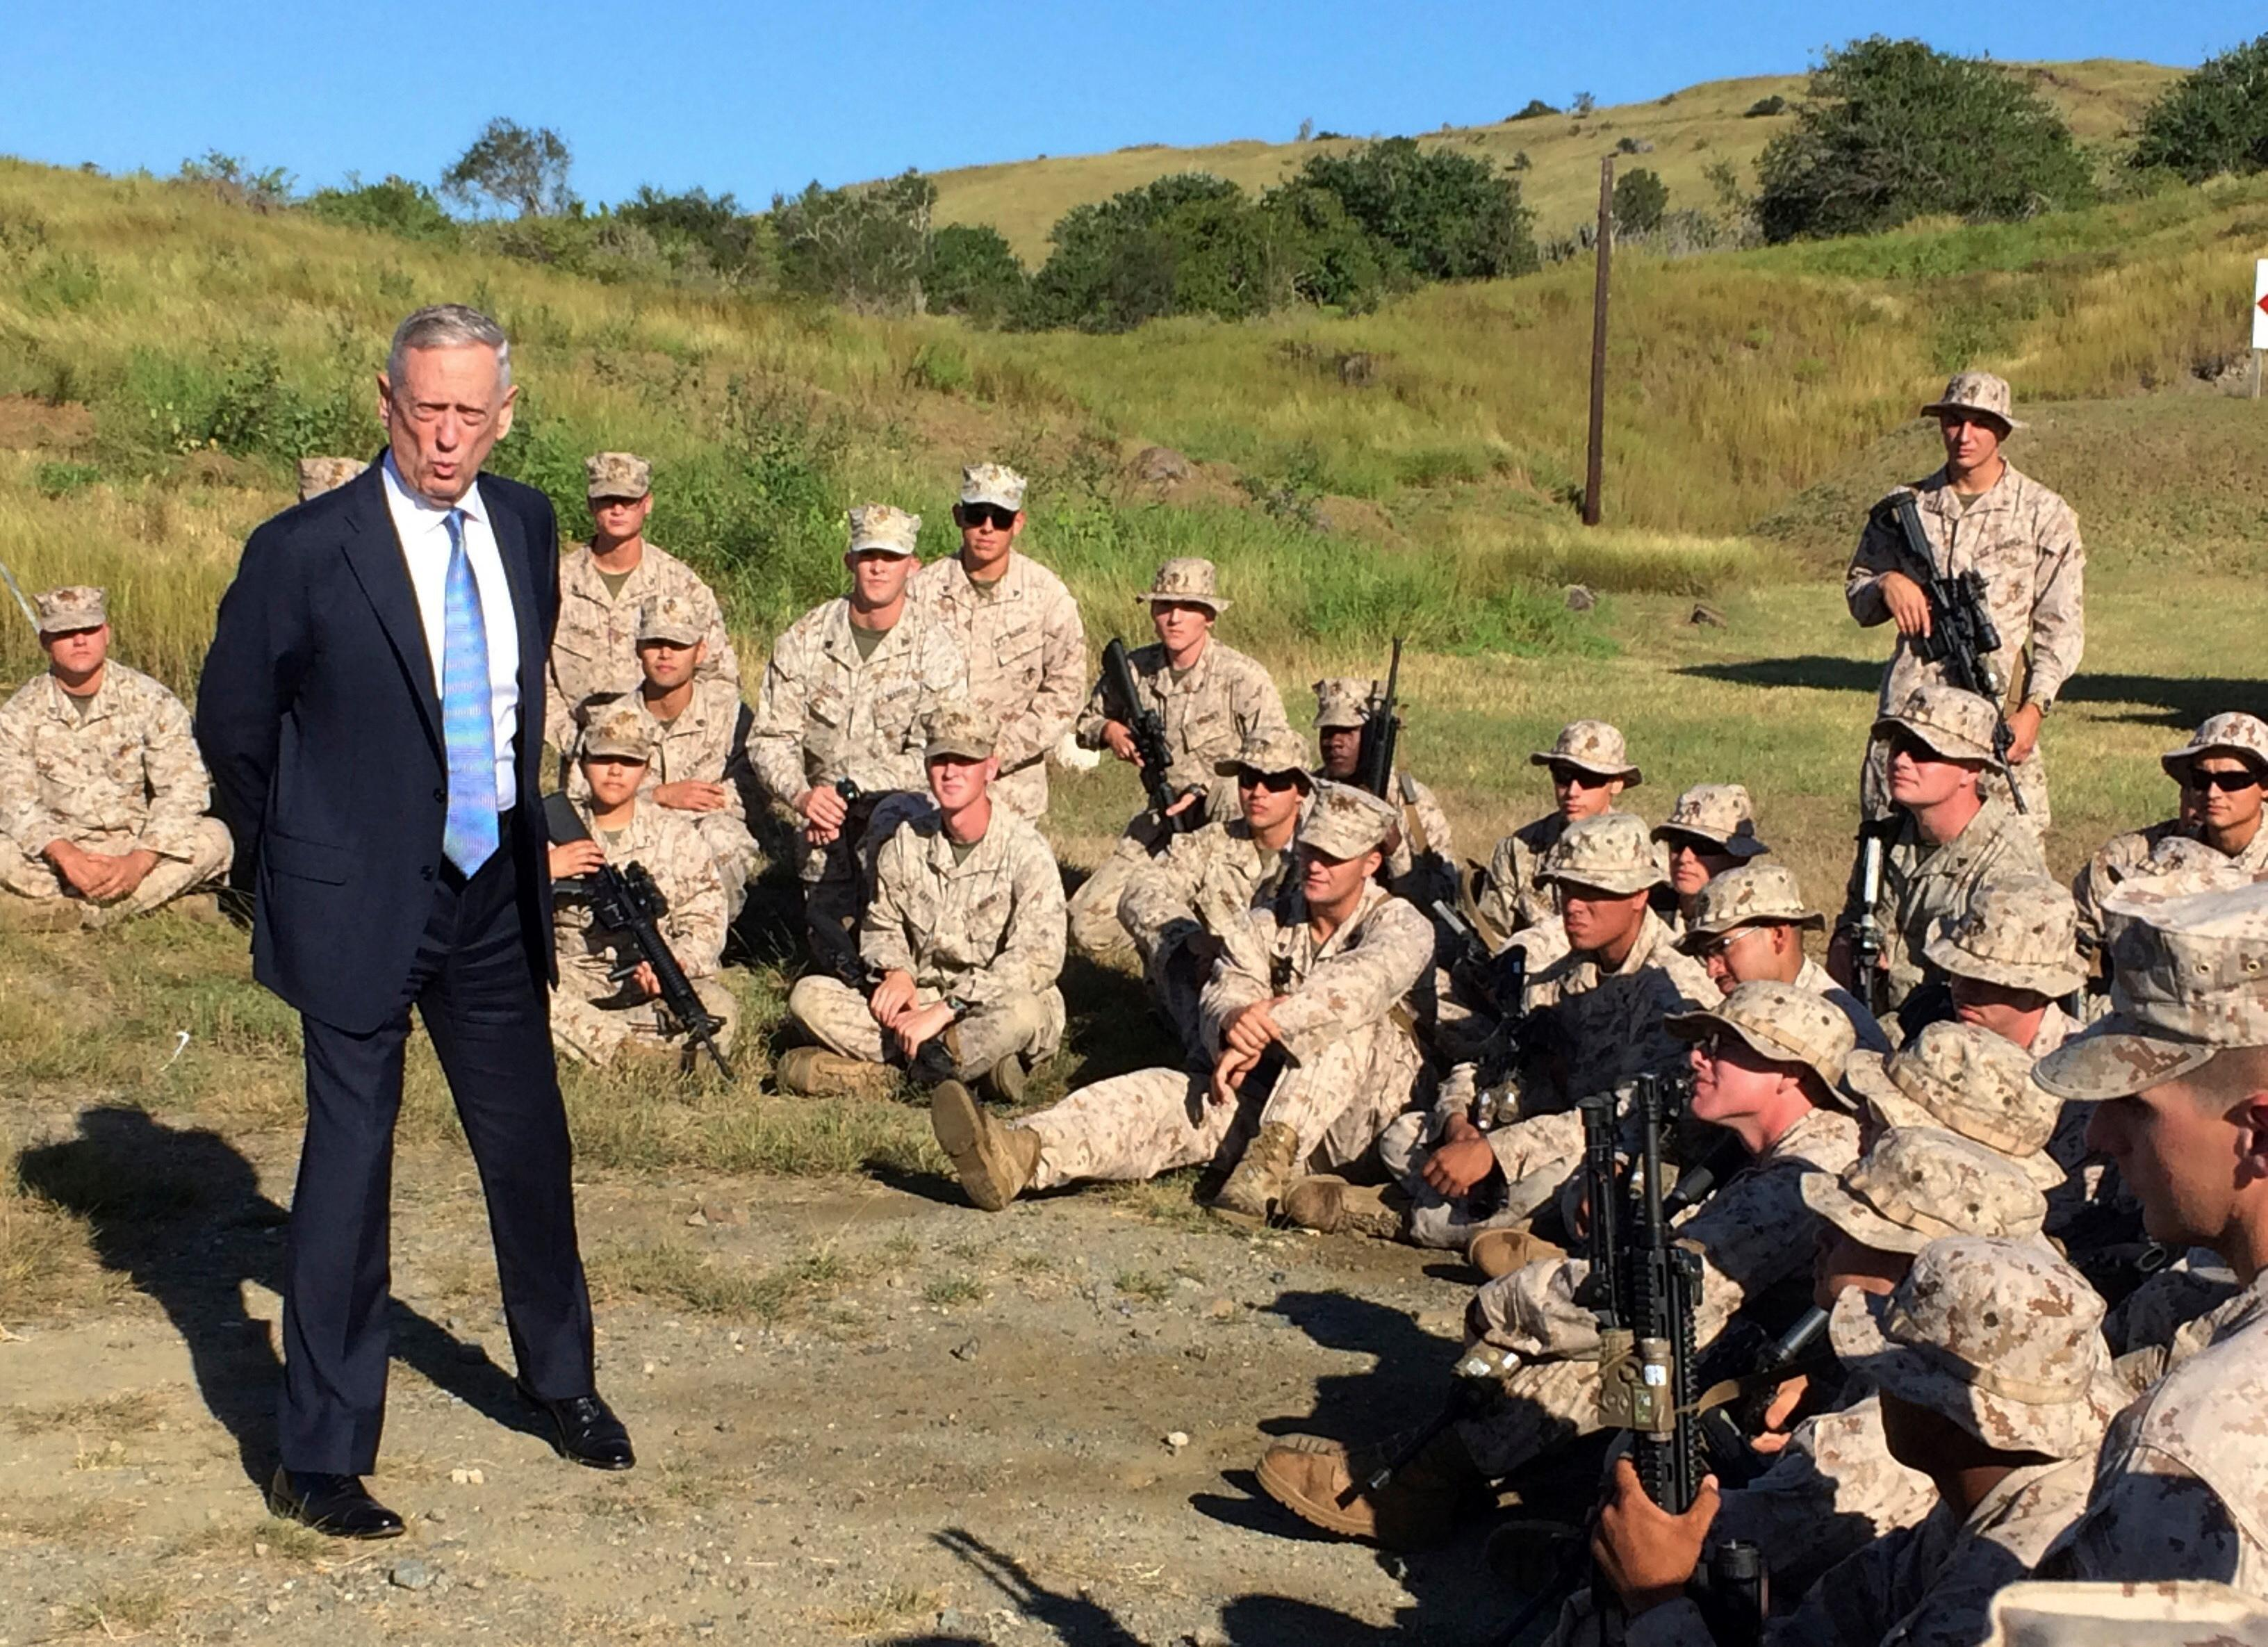 FILE - In this Dec. 21. 2017, file photo, Defense Secretary Jim Mattis talks to U.S. Marine Corps troops at a rifle range at Guantanamo Bay, Cuba. For only the second time since 9/11, America's defense secretary didn't visit U.S. troops in a war zone during December, breaking a longstanding tradition of personally and publicly thanking service members in combat who are separated from their families during the holiday season. (AP Photo/Robert Burns, File)